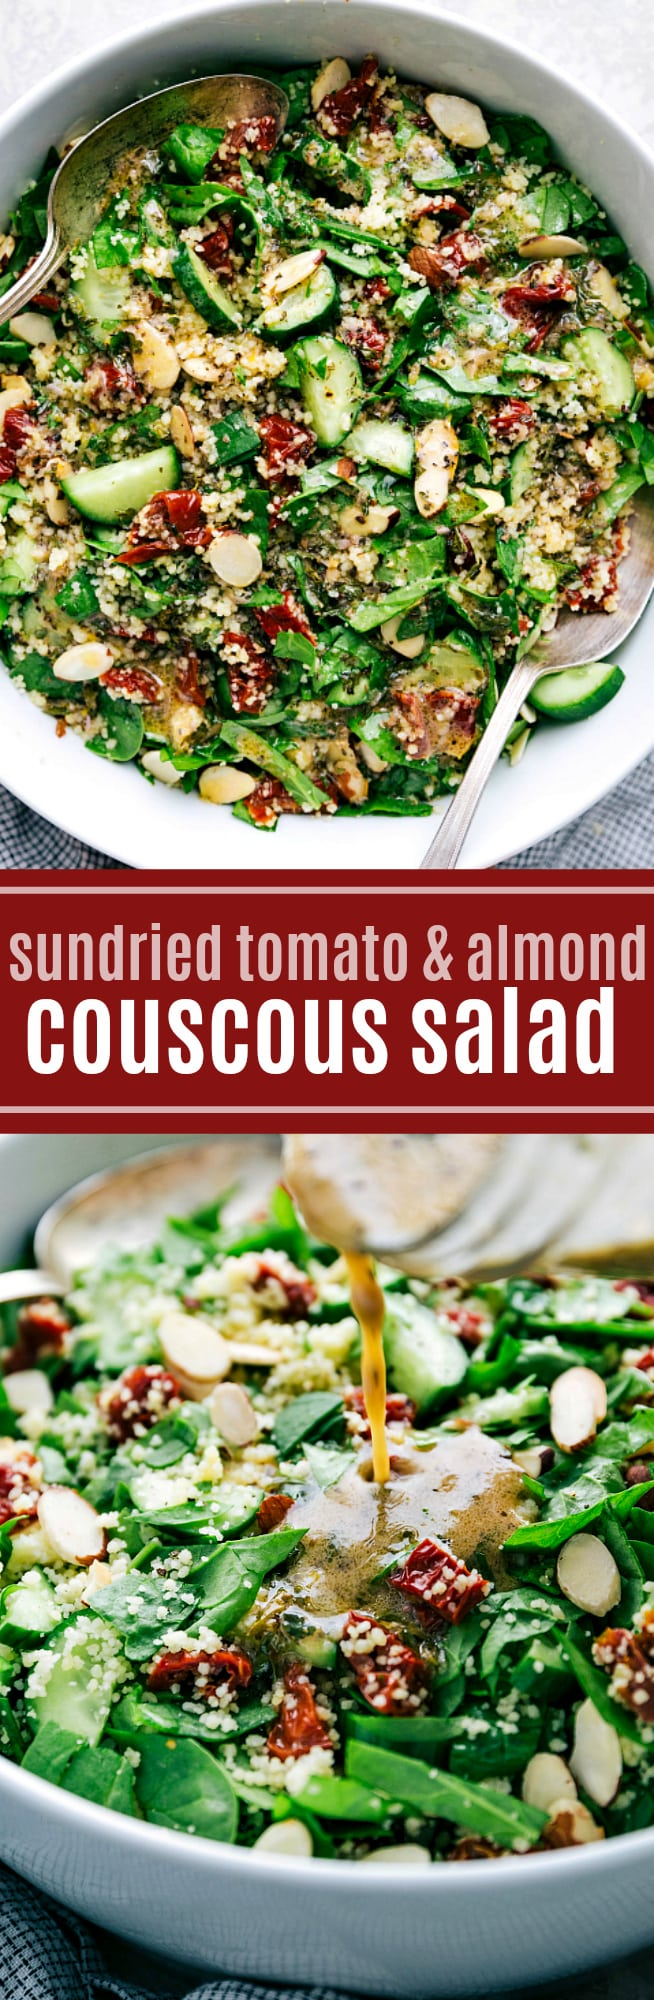 A delicious, flavor packed, and healthy couscous salad with sun dried tomatoes, toasted almonds, and cucumber dressed in a flavorful lemon vinaigrette via chelseasmessyapron.com #salad #couscous #healthy #spinach #easy #lemon #dressing #quick #simple #summer #potluck #mealprep #best